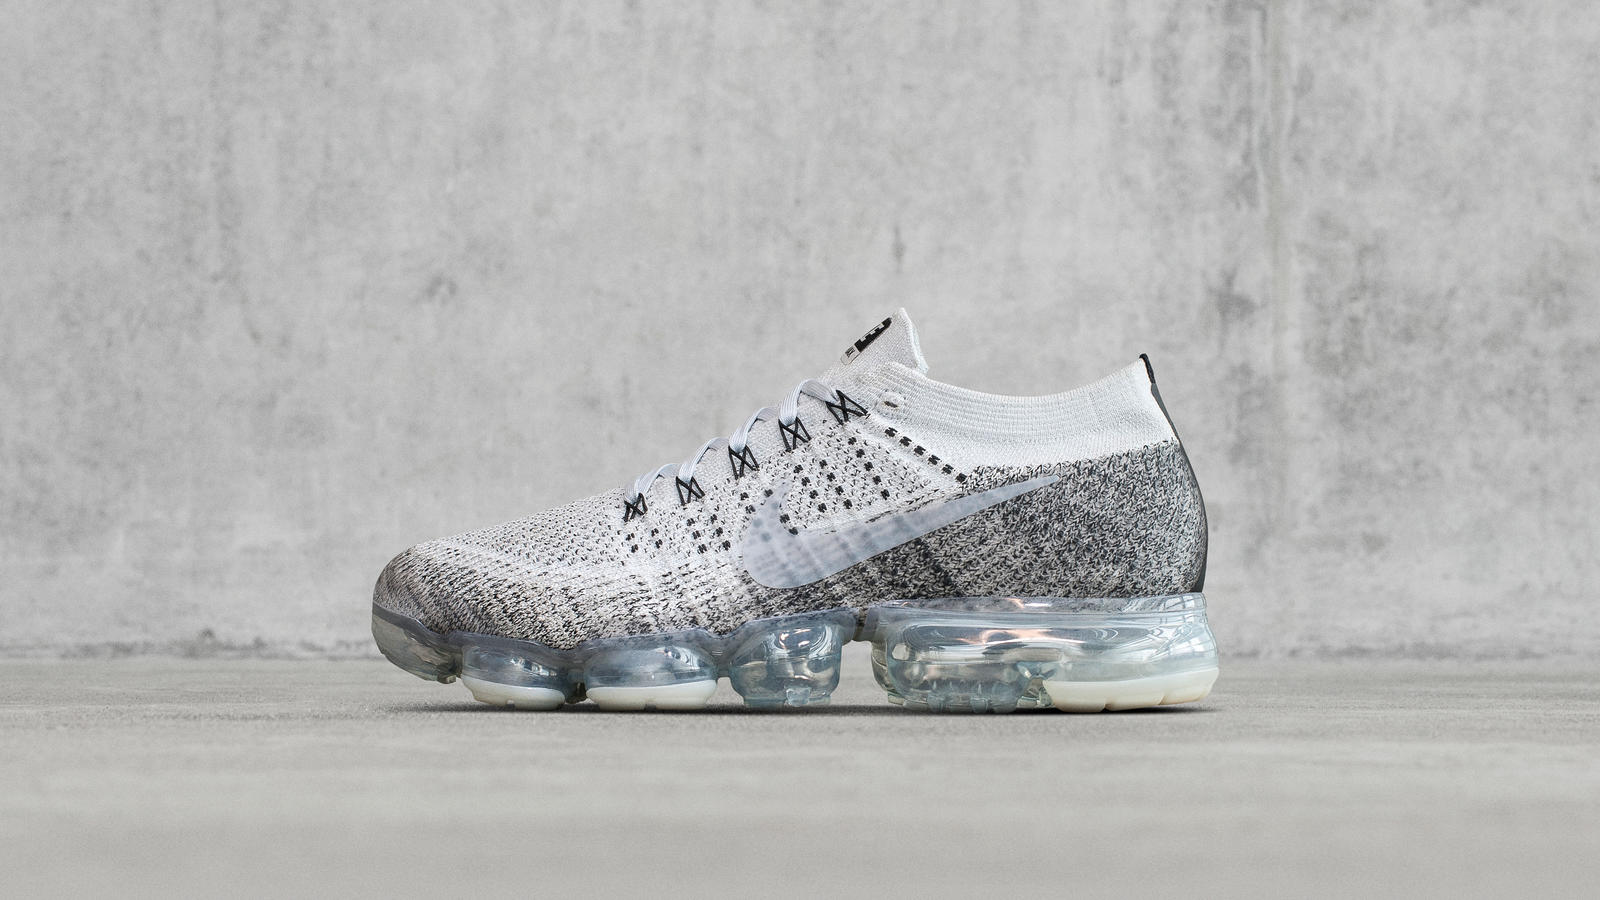 NikeLab Air VaporMax. Dsc 6599 hd 1600